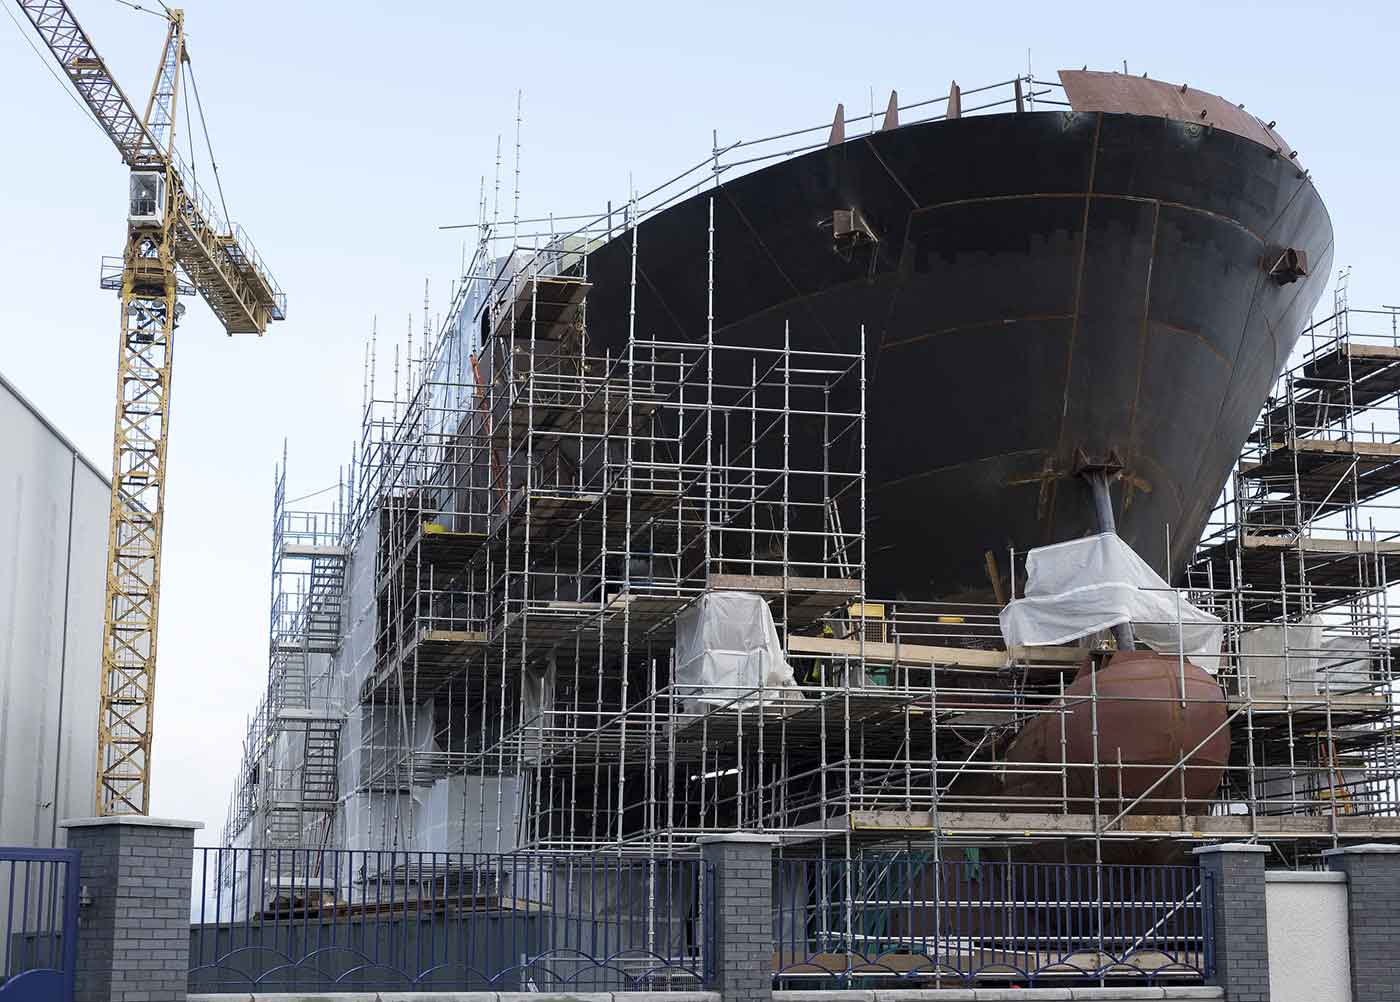 Asbestos use at shipyards